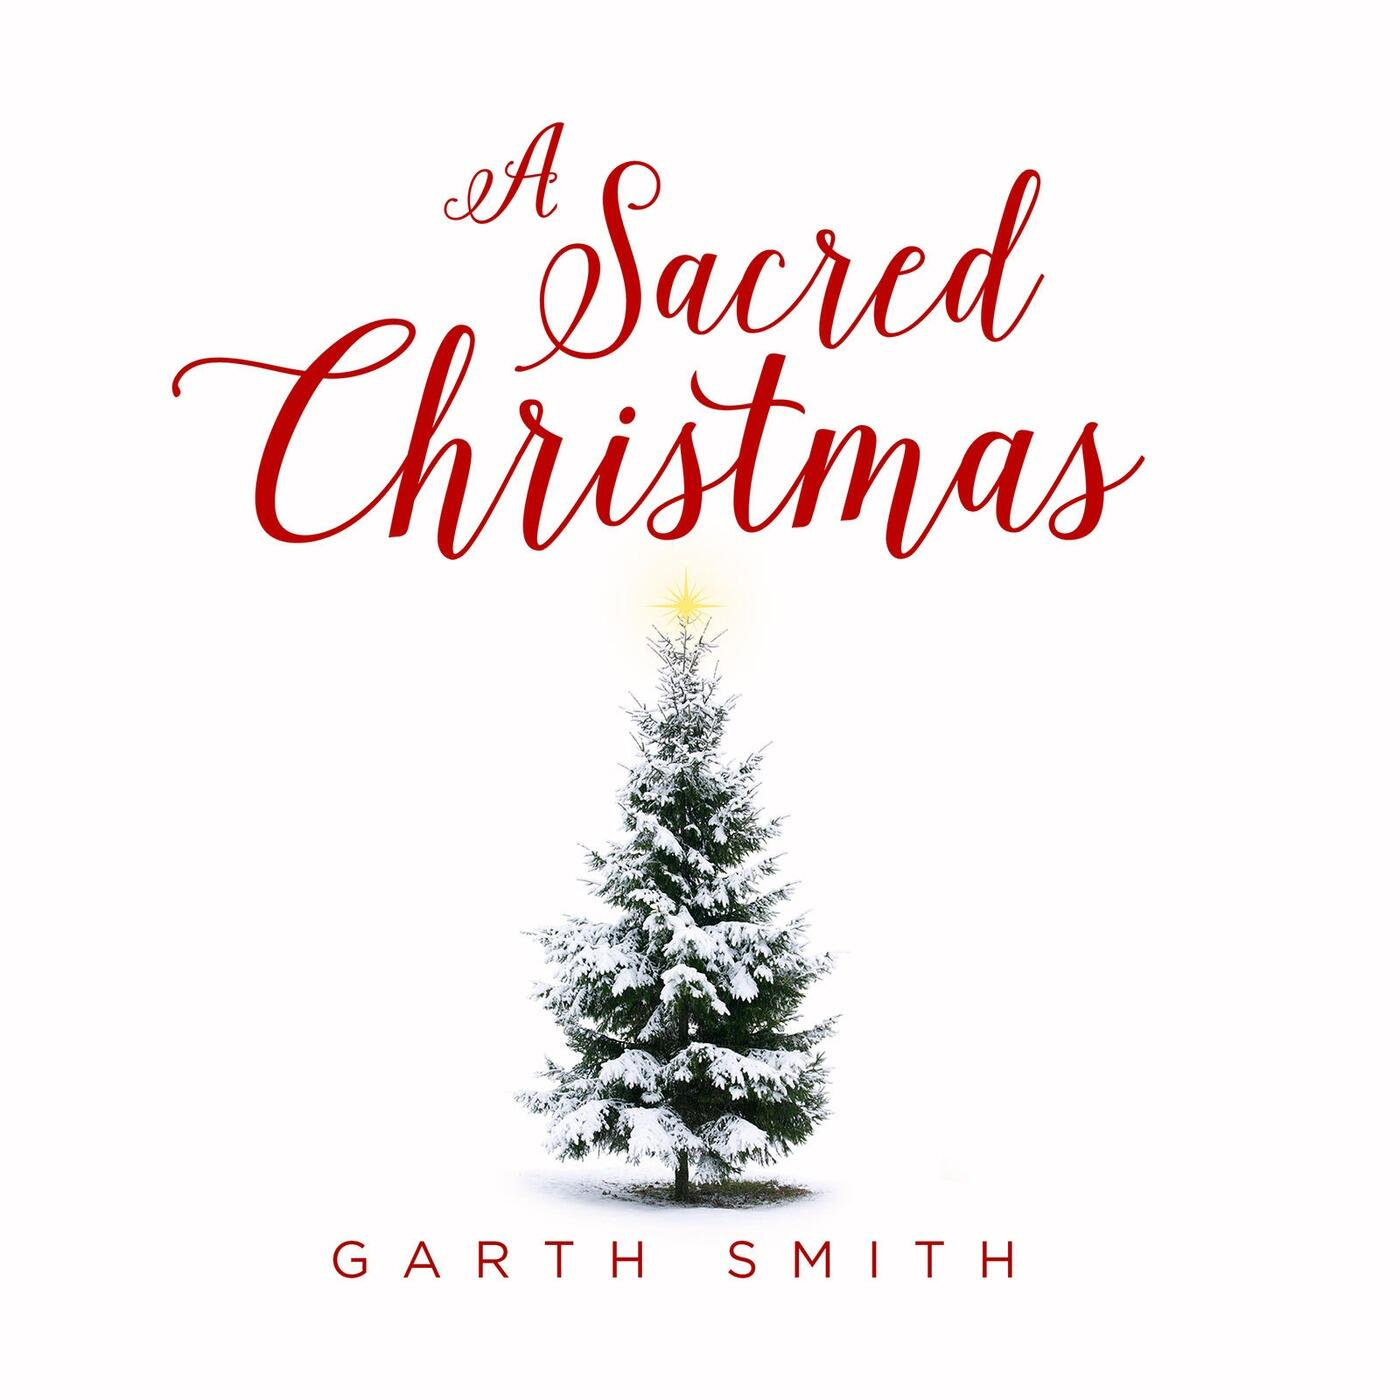 Listen Free to Garth Smith - A Sacred Christmas Radio on iHeartRadio ...